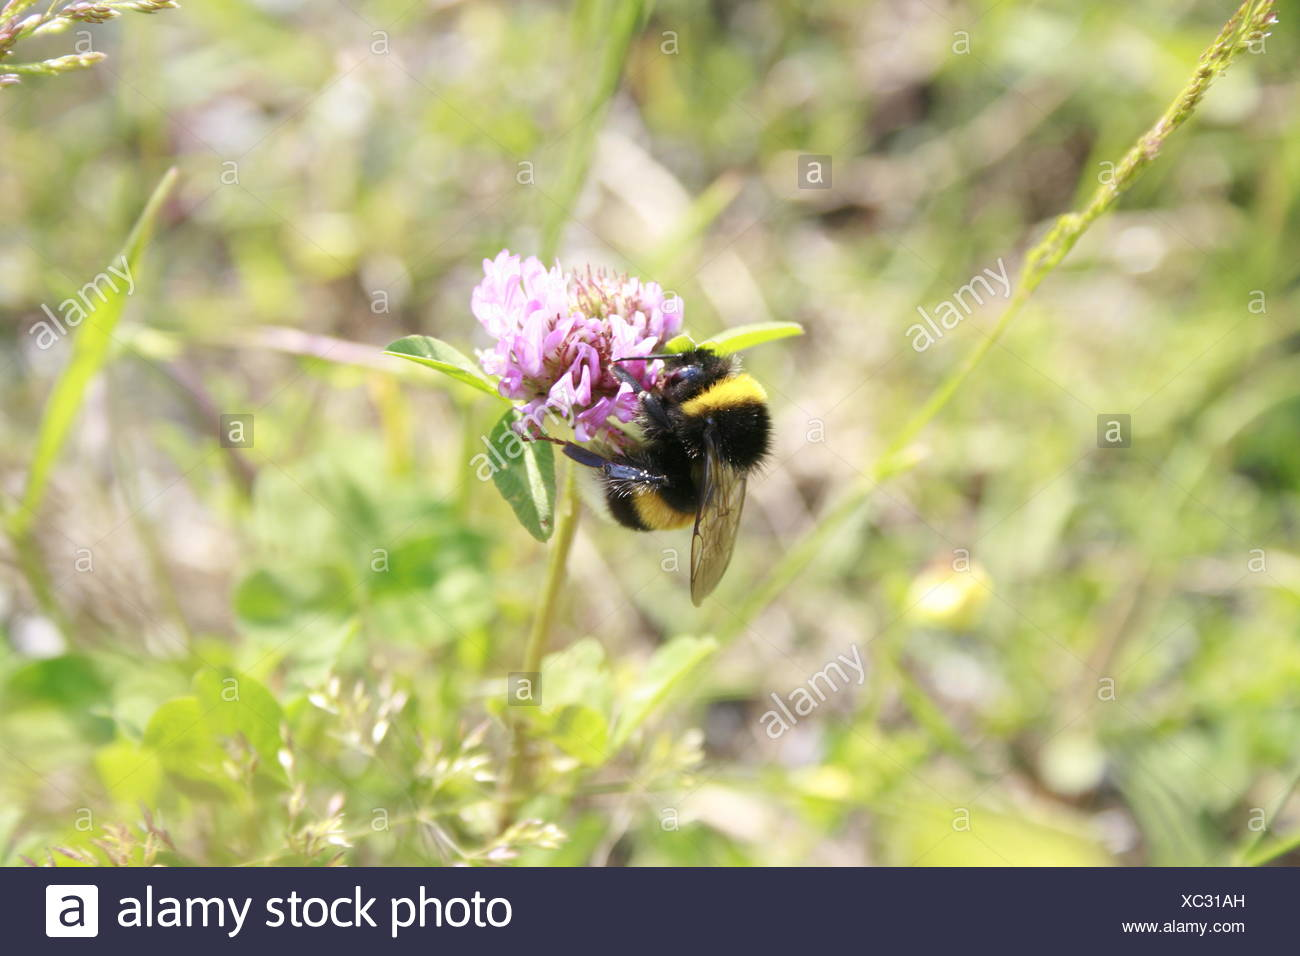 Bumblebee sitting on a clover blossom Stock Photo